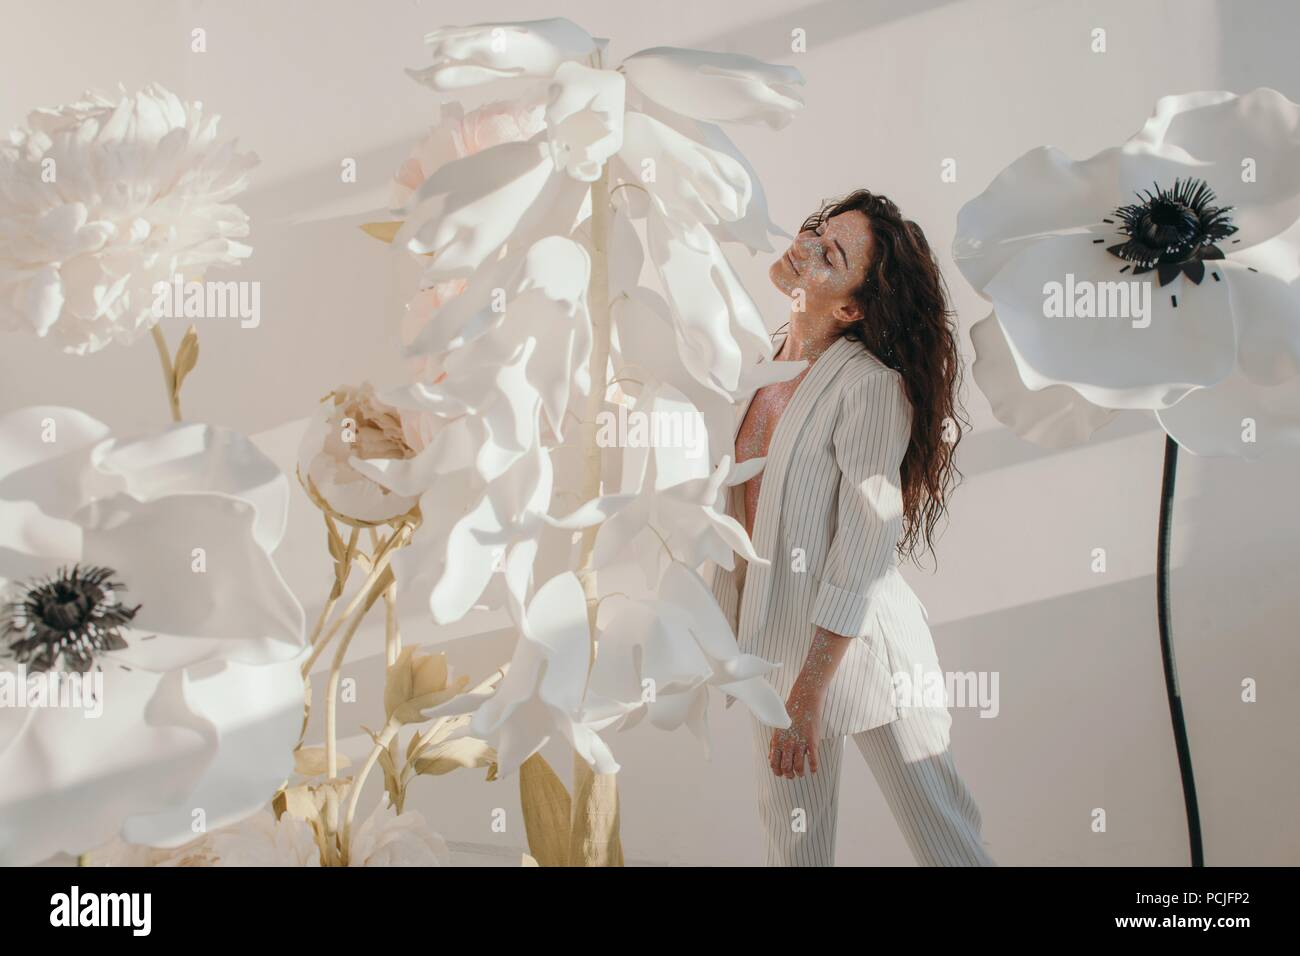 Beautiful woman covered in glitter standing by giant artificial beautiful woman covered in glitter standing by giant artificial flowers izmirmasajfo